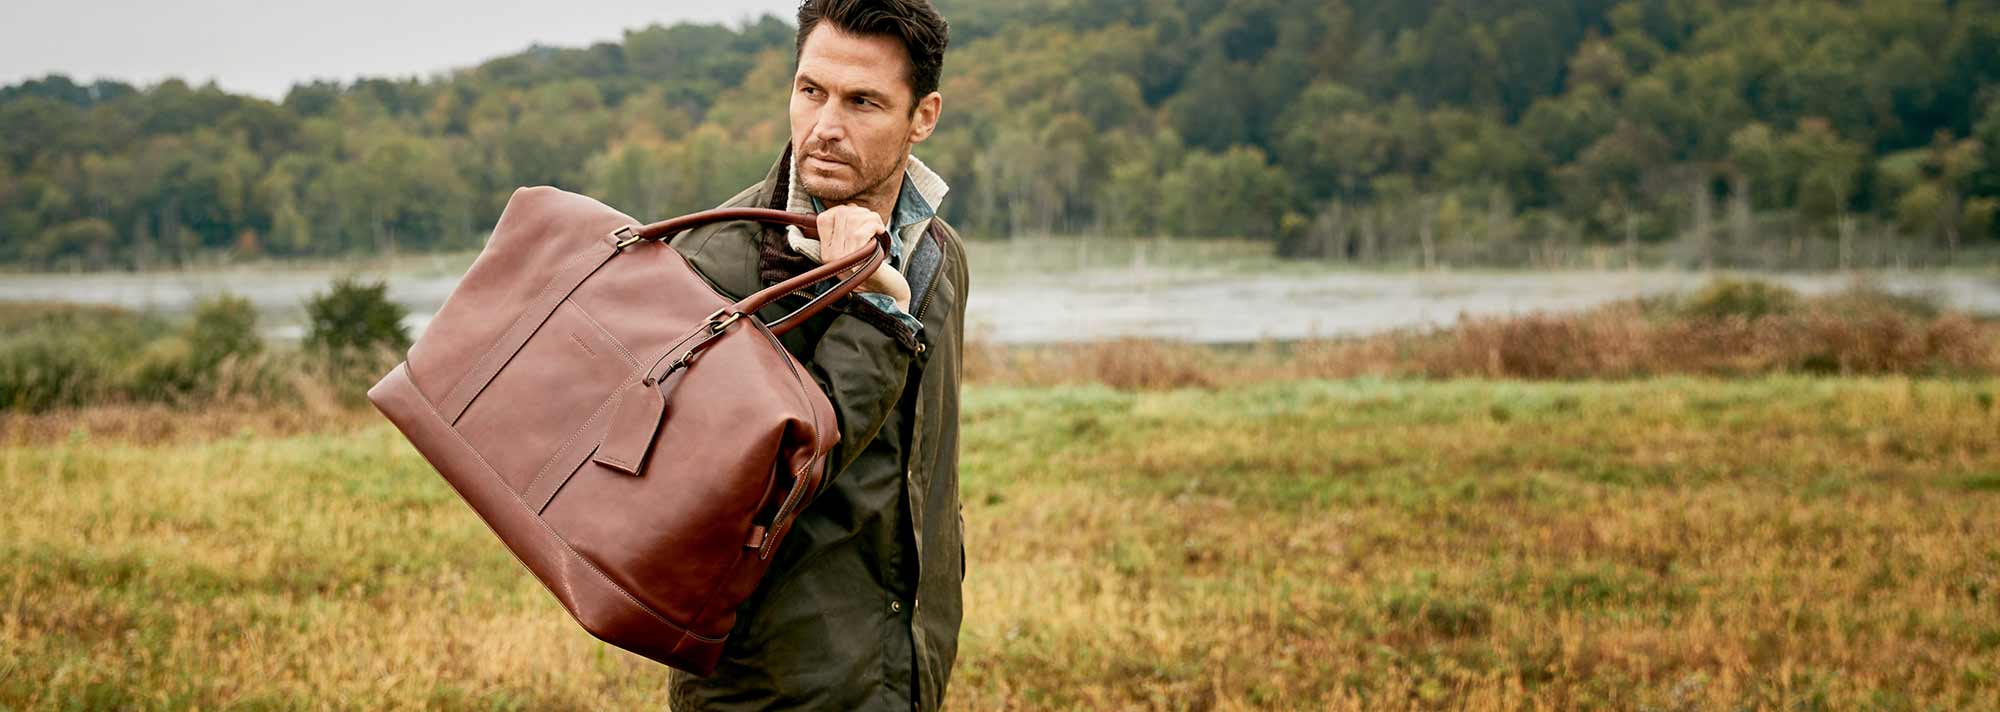 bourke guys Dooney & bourke handbags : find totes, satchels, and more from overstockcom your online clothing & shoes store get 5% in rewards with club o.